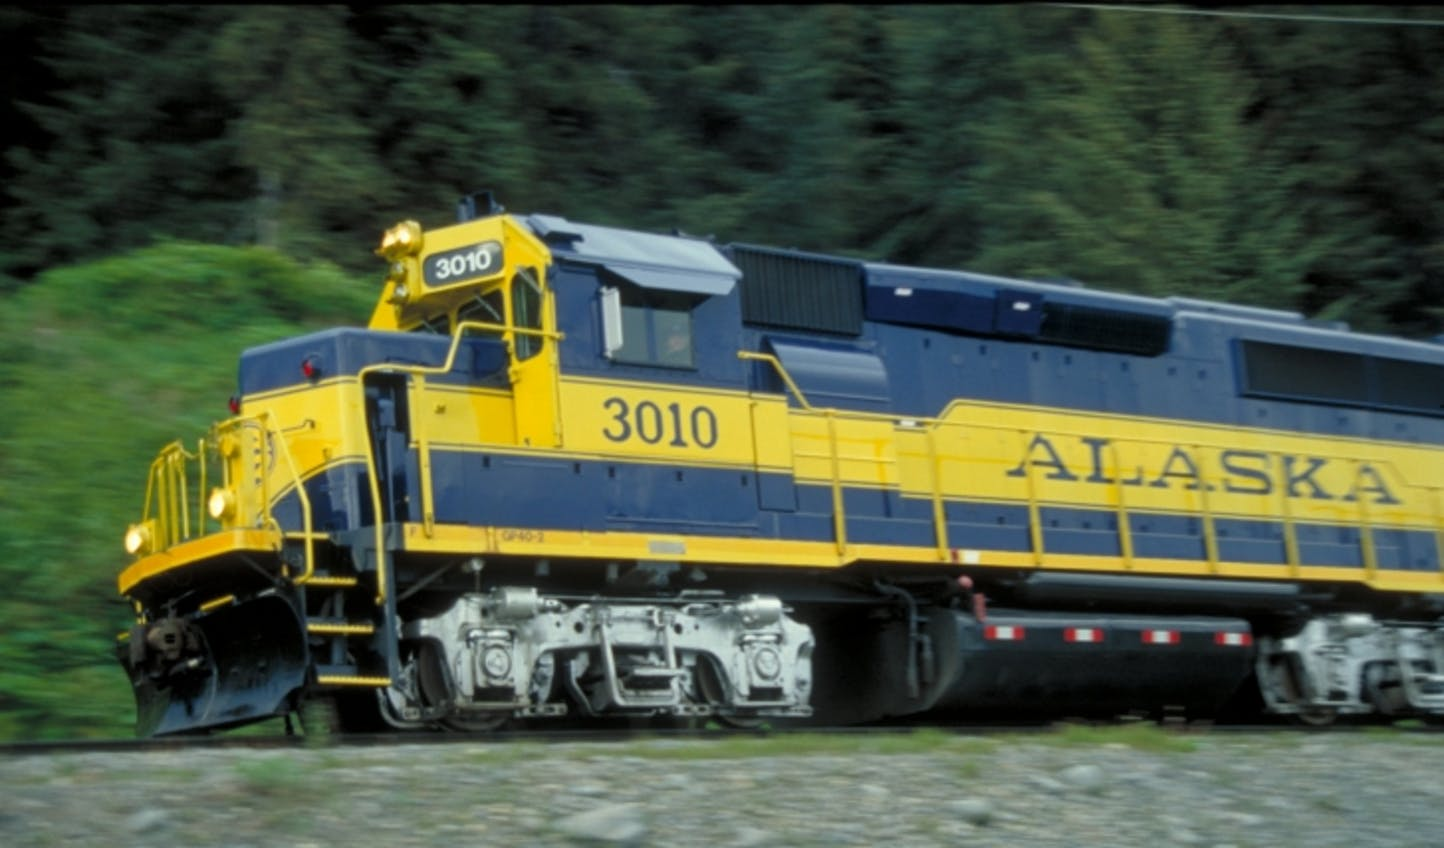 Soak in the sights on the Alaska railroad train